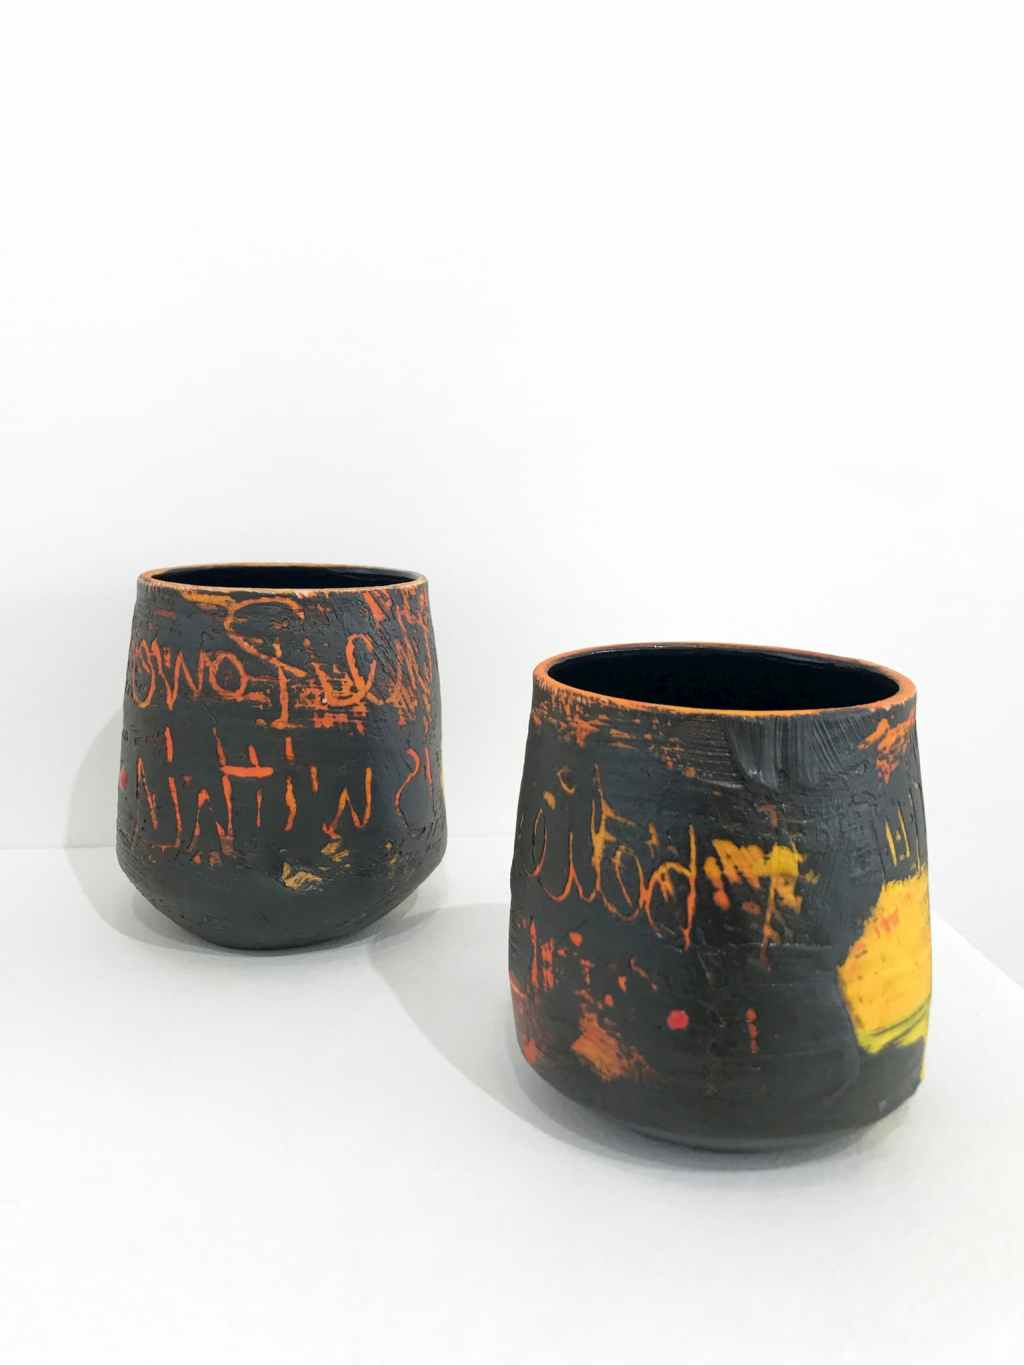 Craft in America Here/Now Yunomi Lesley McInally